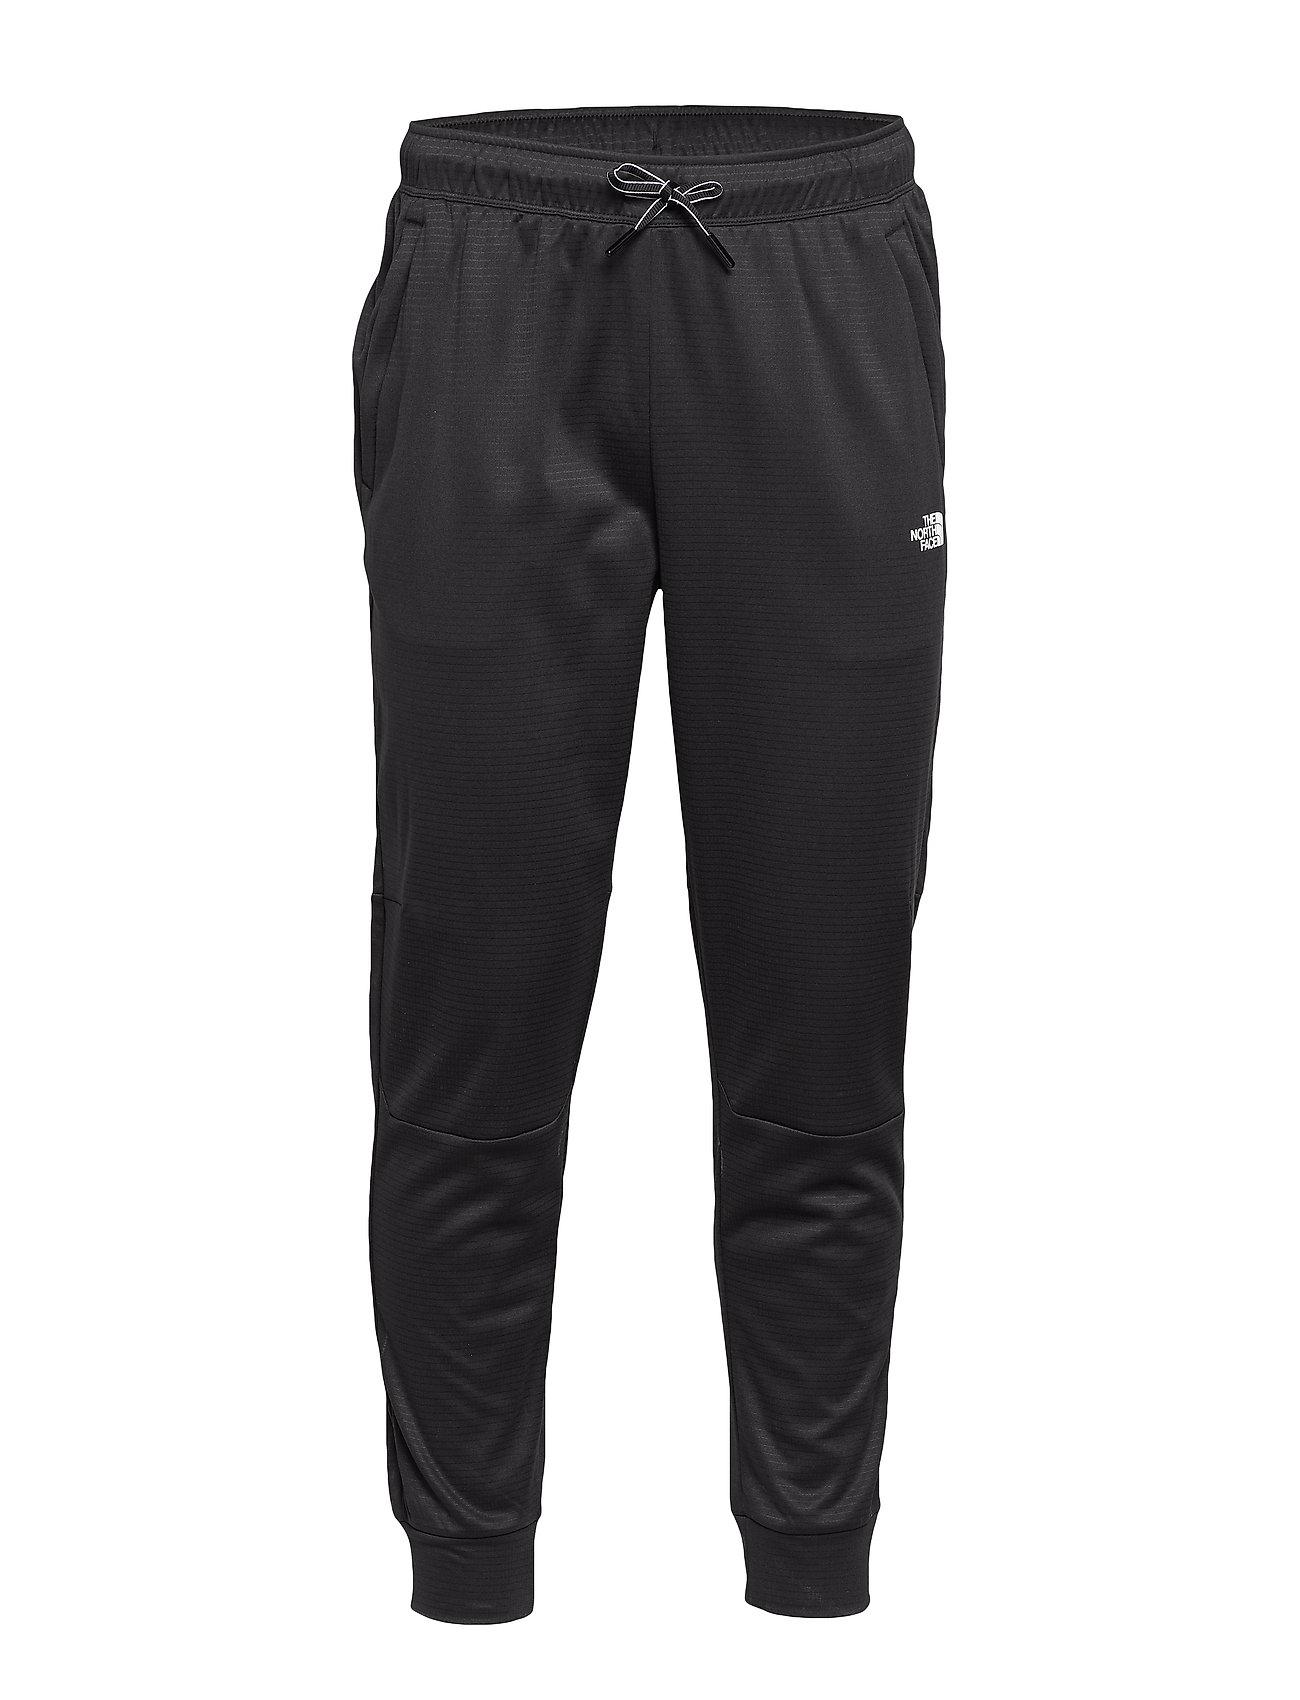 The North Face M TRN N LOGO JOGGER - TNF BLACK